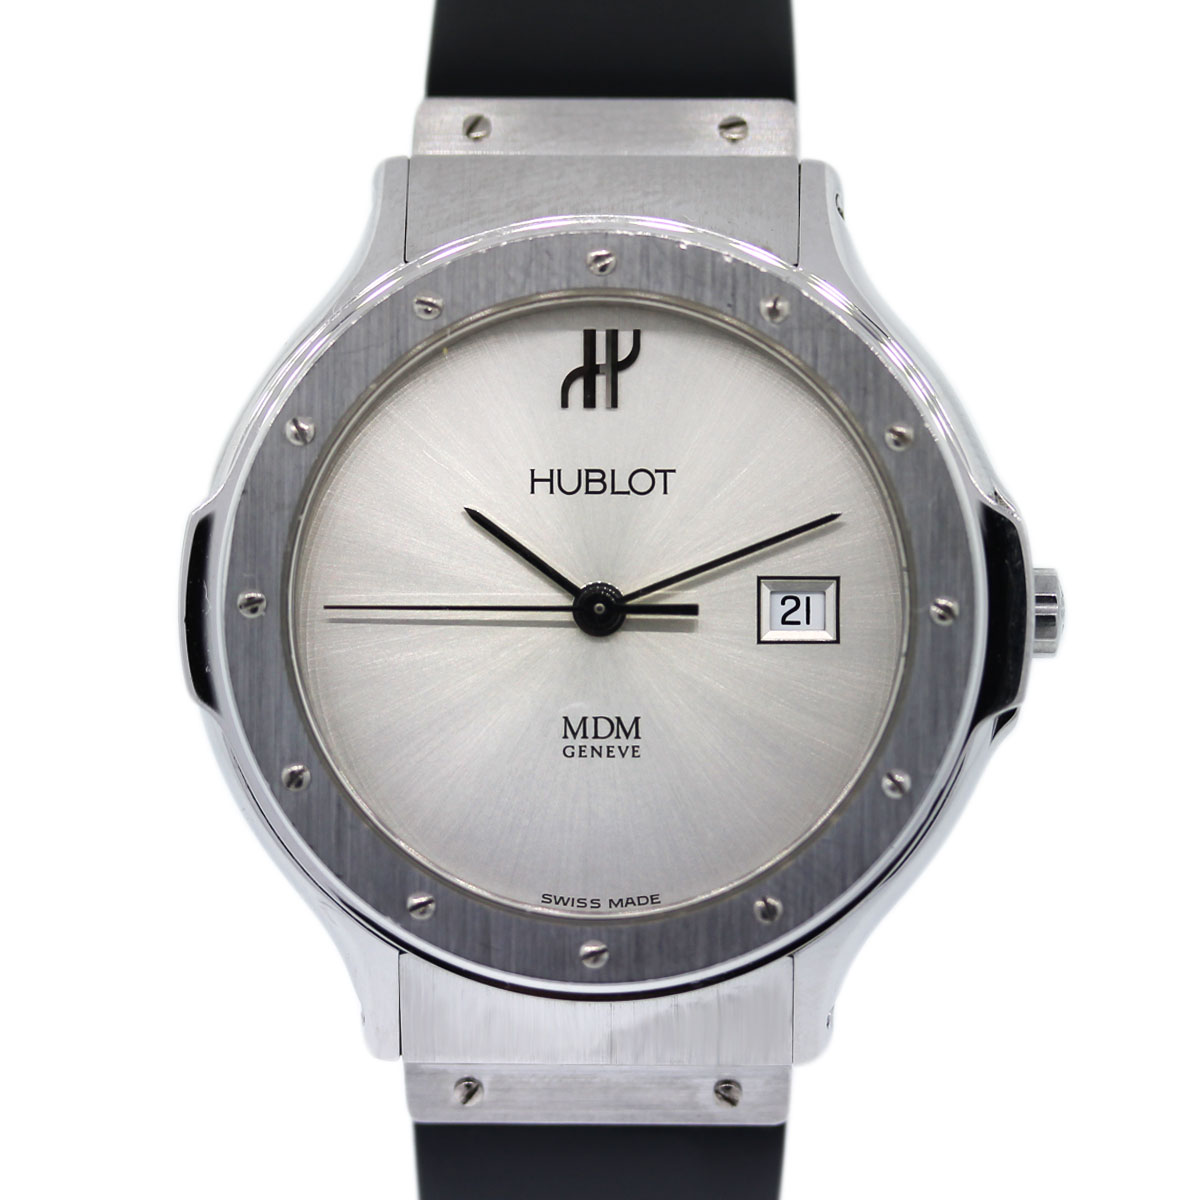 Pre Owned Hublot MDM Silver Dial Ladies Watch